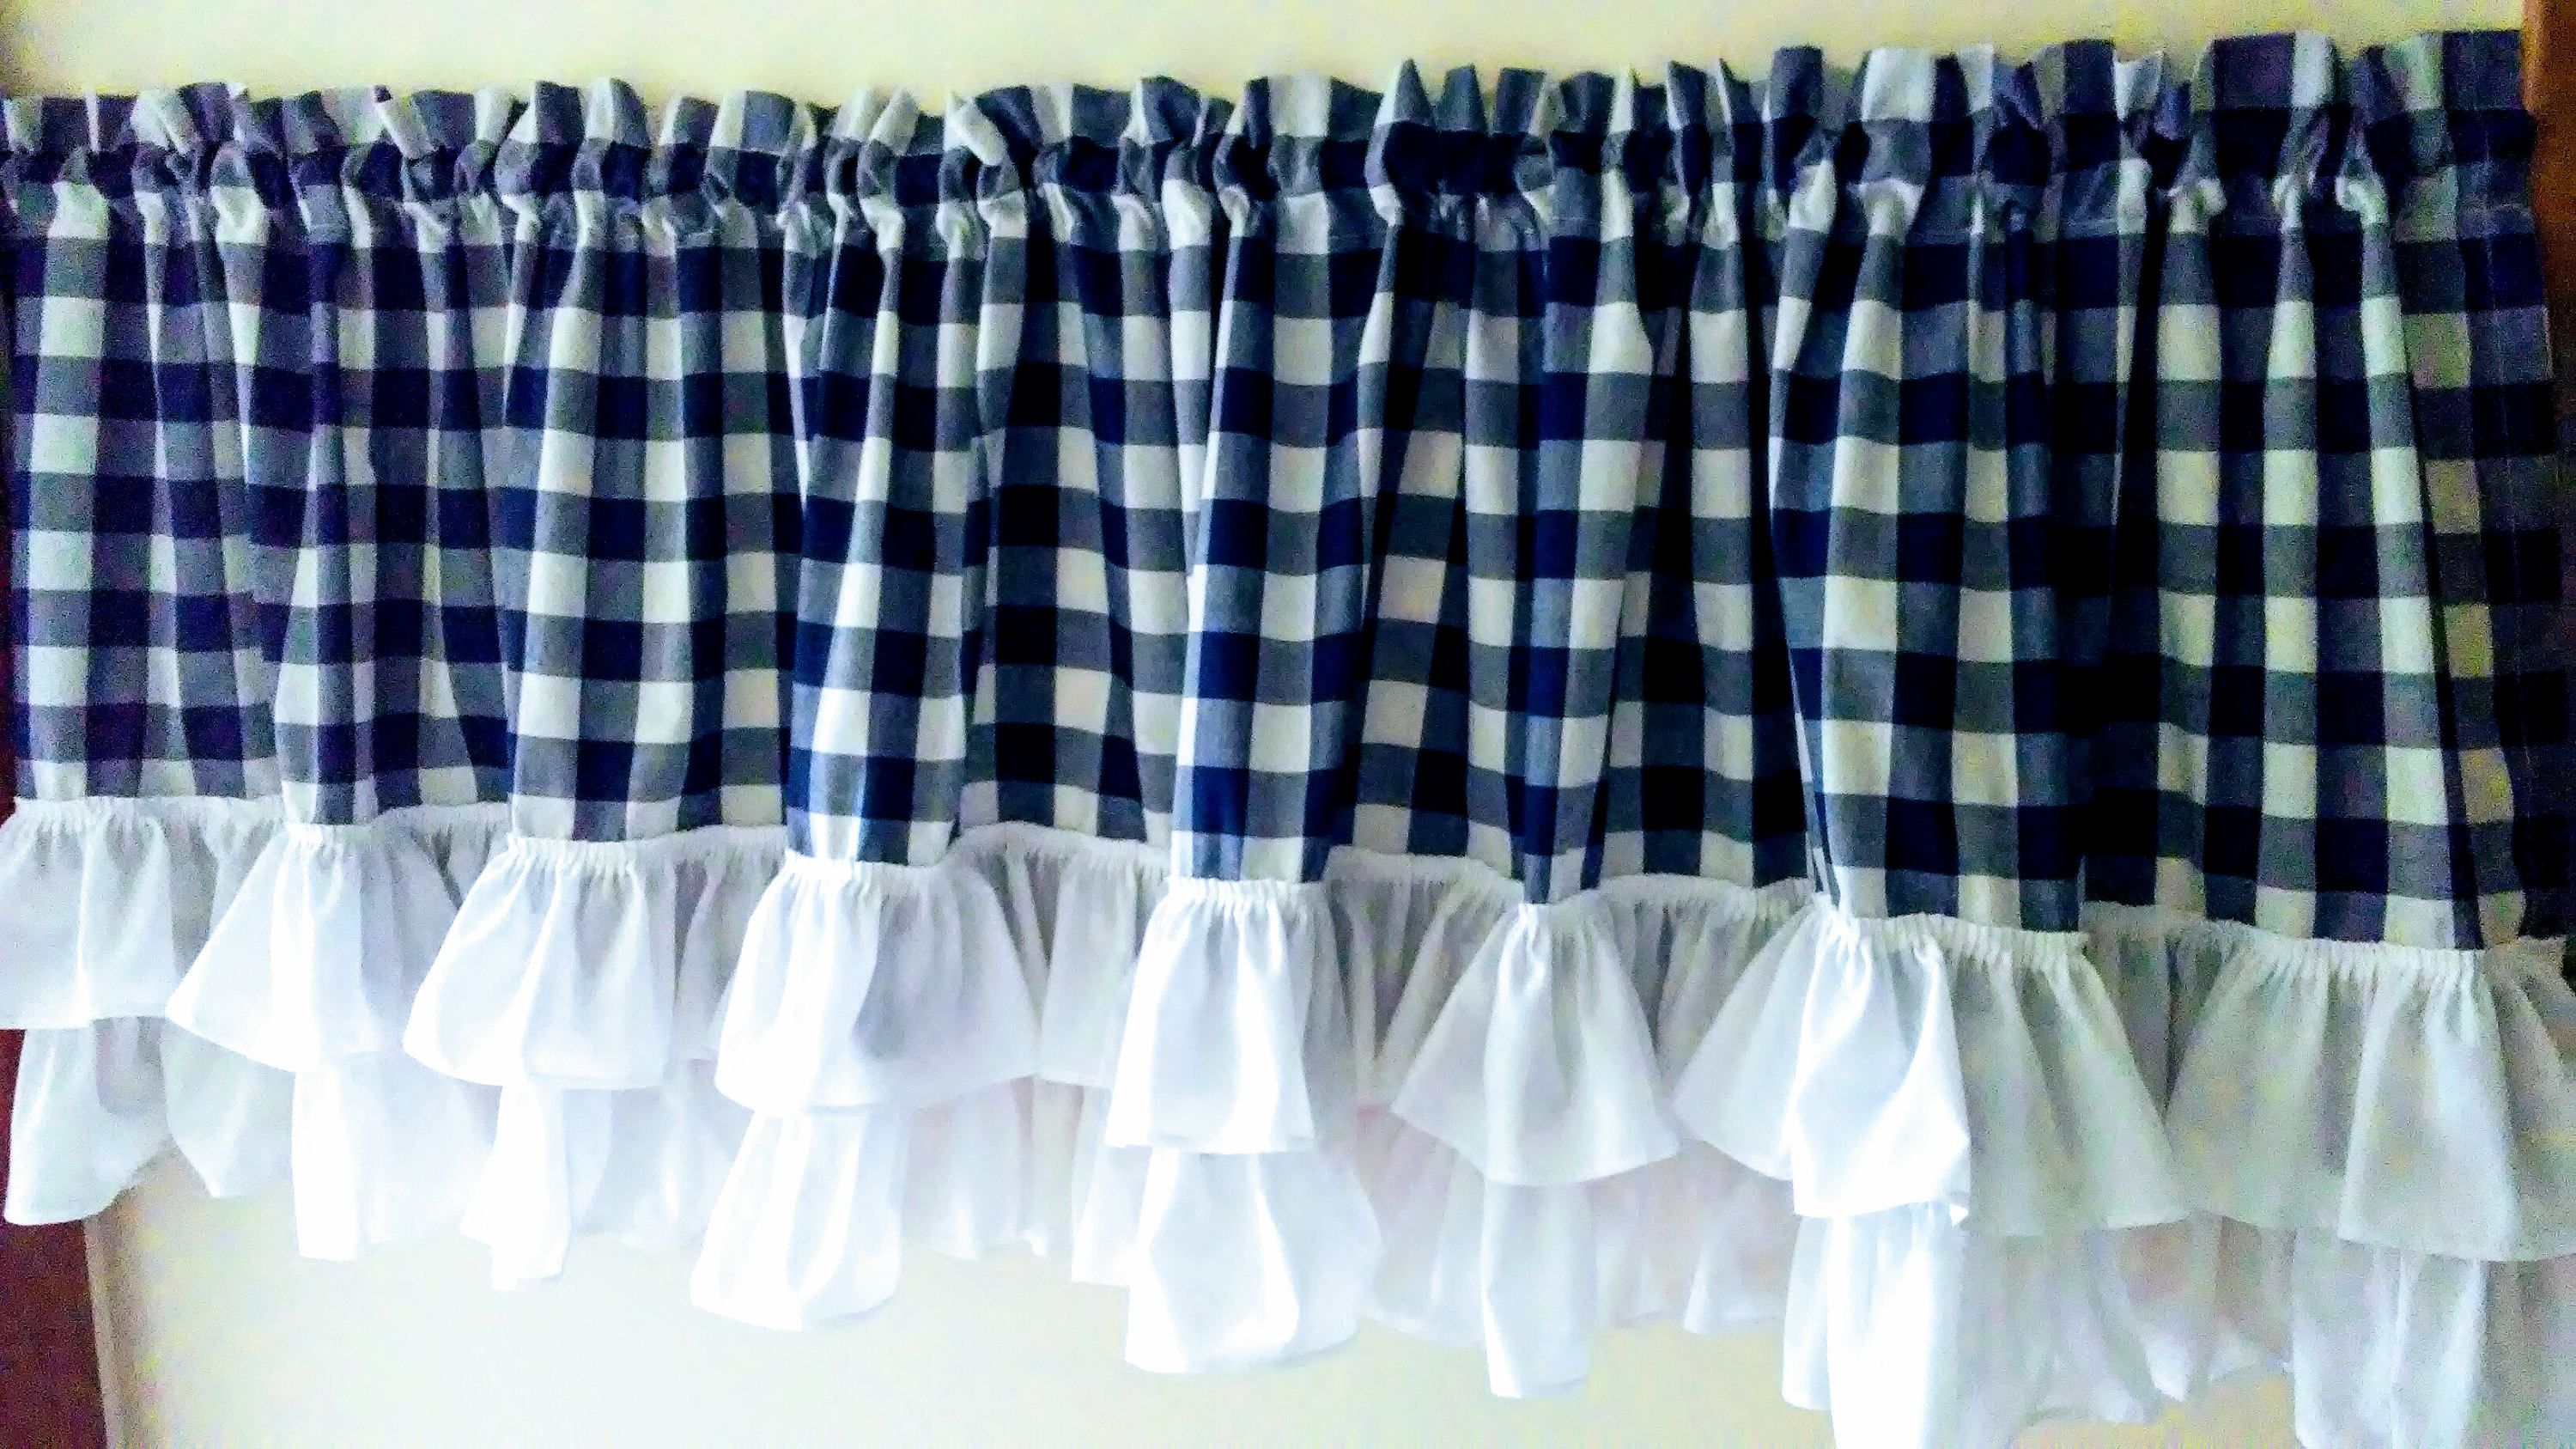 Gingham Ruffled Valance Etsy Valance Cafe Curtains Gingham